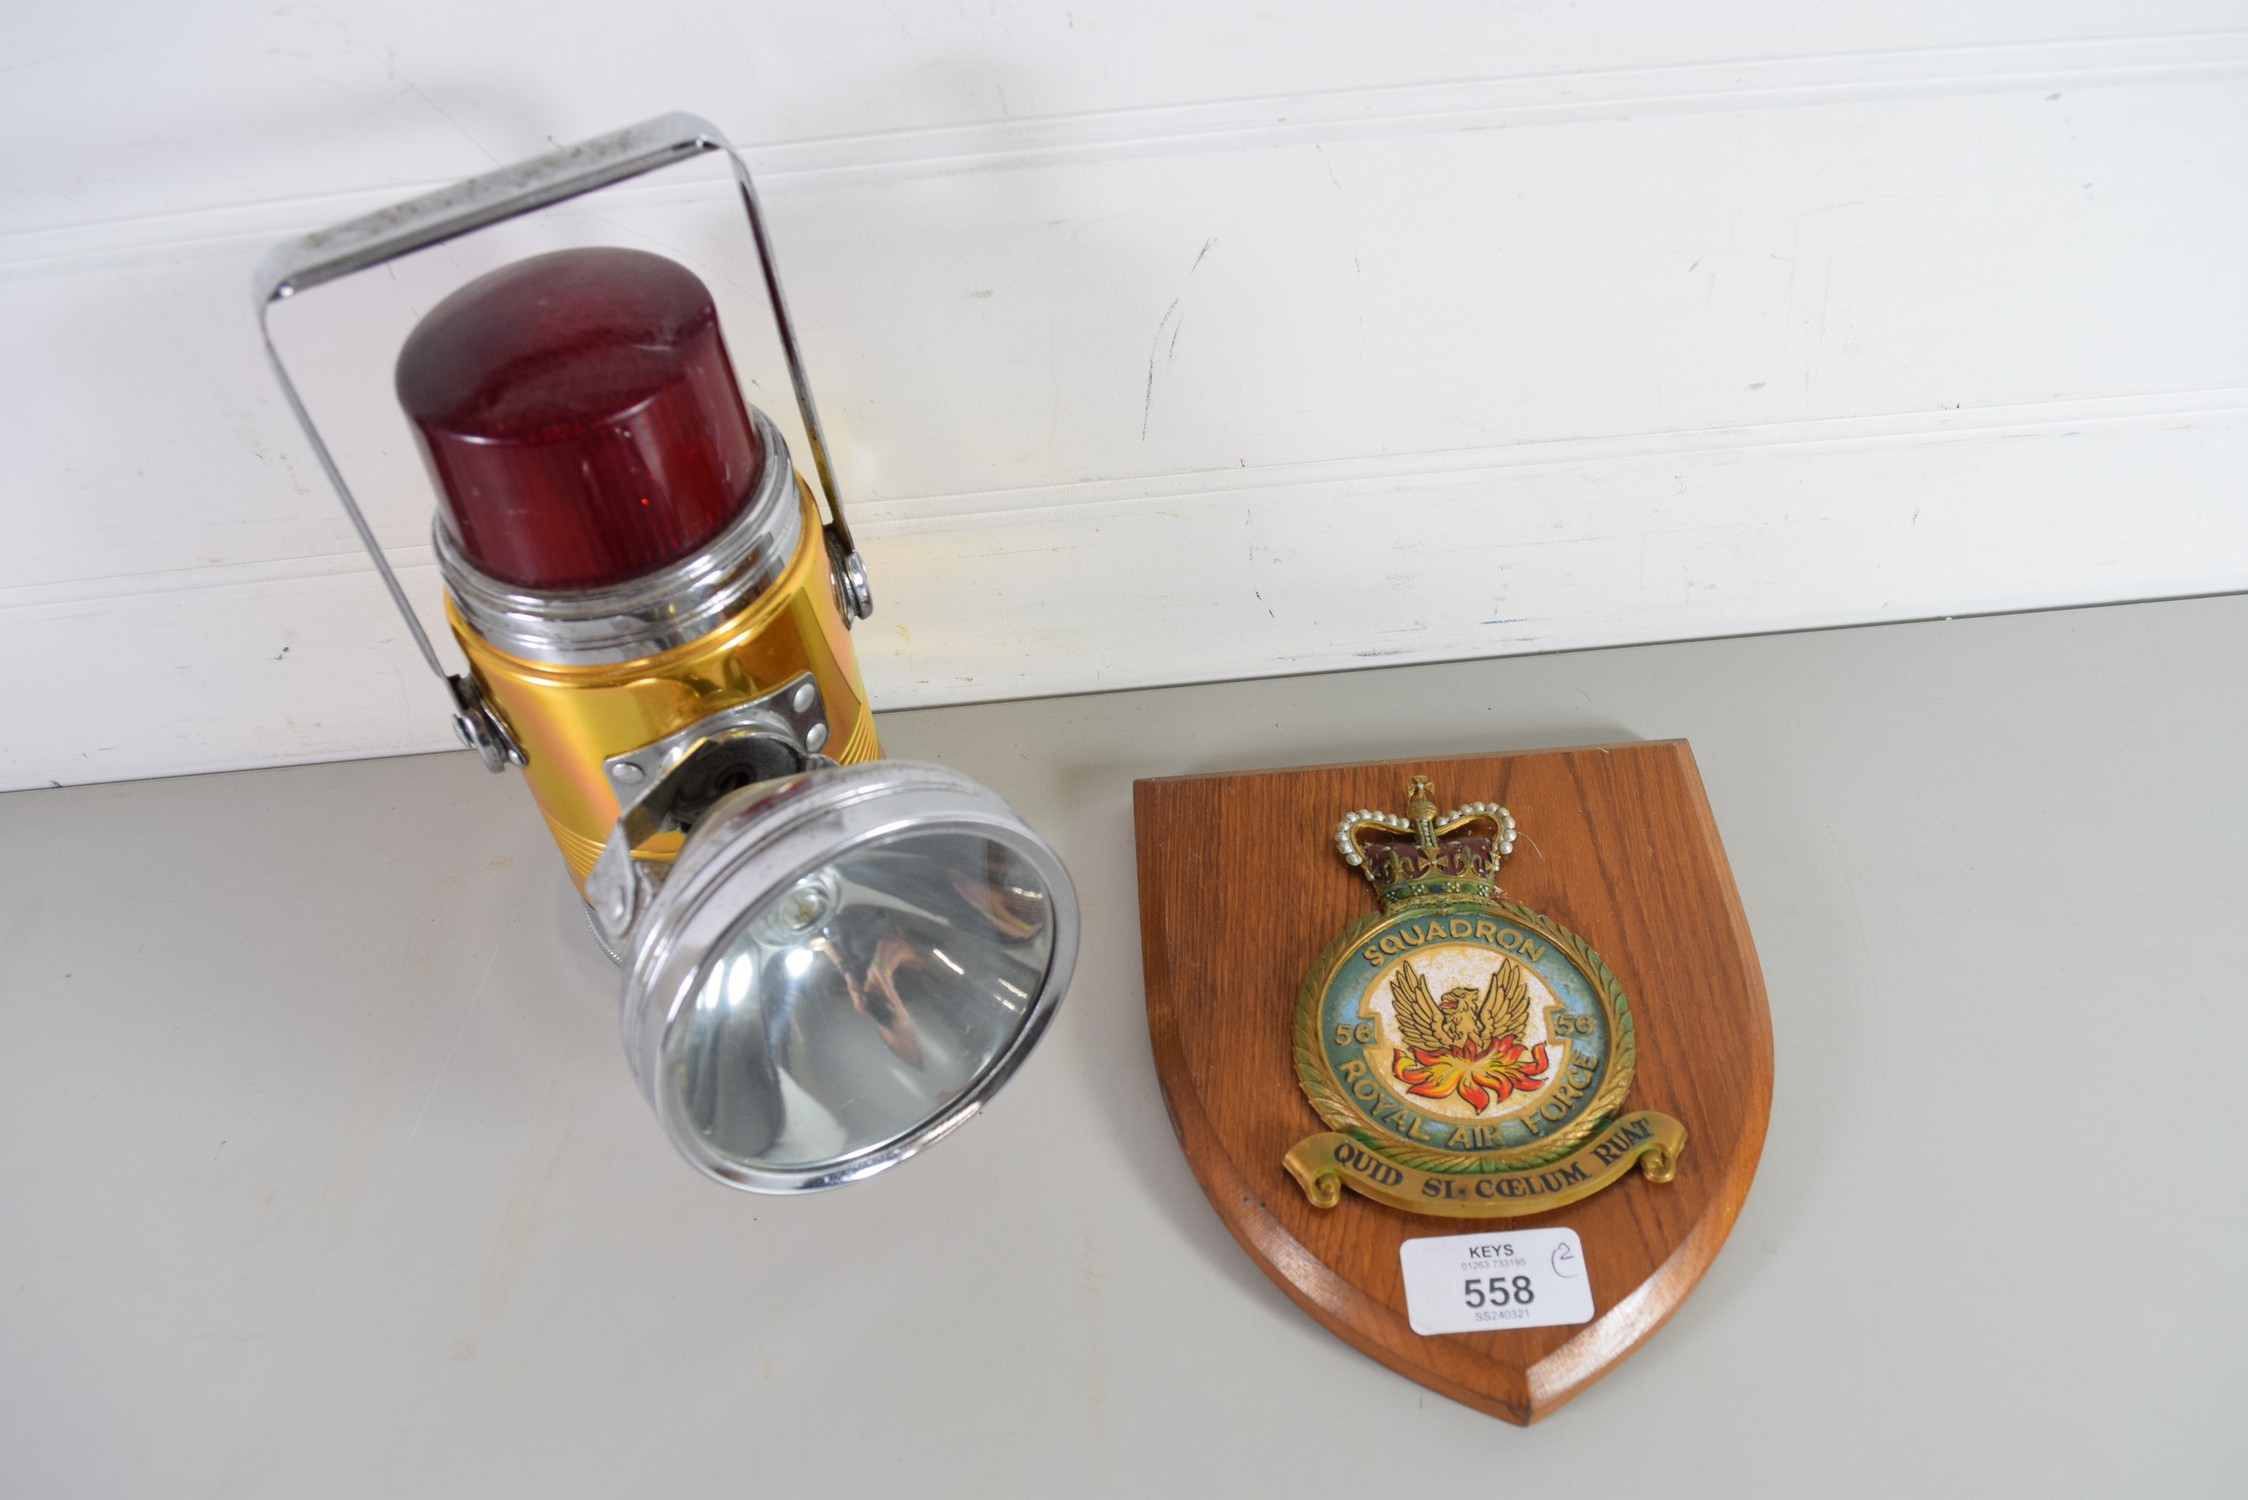 Wooden plaque for 56 Squadron, RAF, together with a Pifco dome lamp